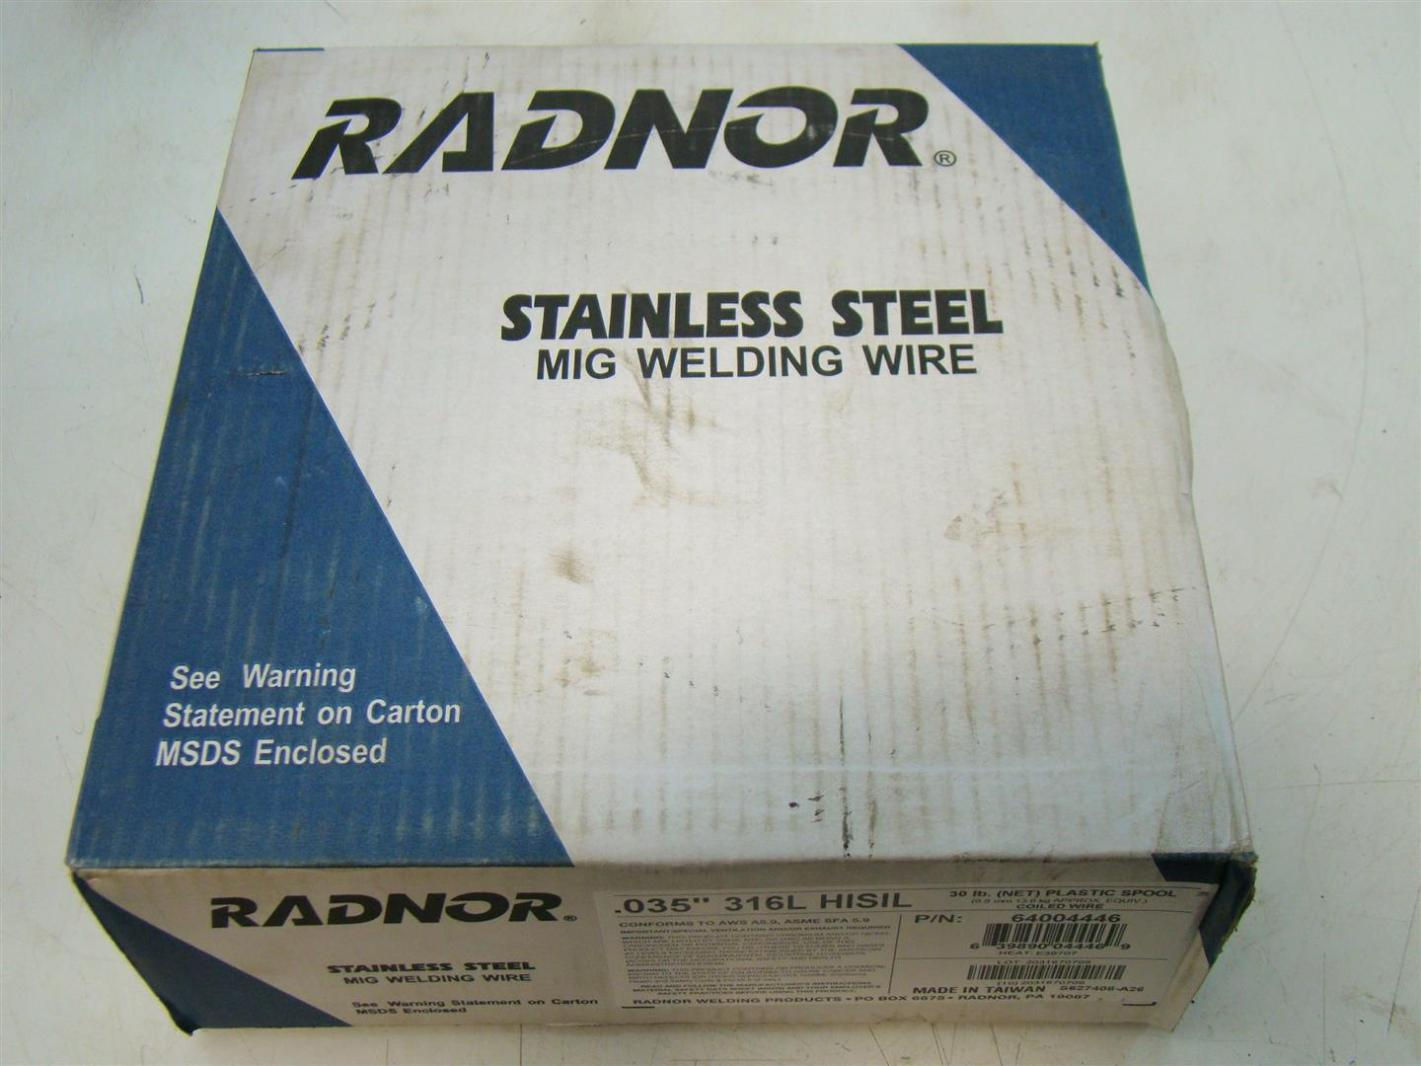 Radnor Stainless Steel Mig Welding Wire Plastic Spool Coiled Wire ...